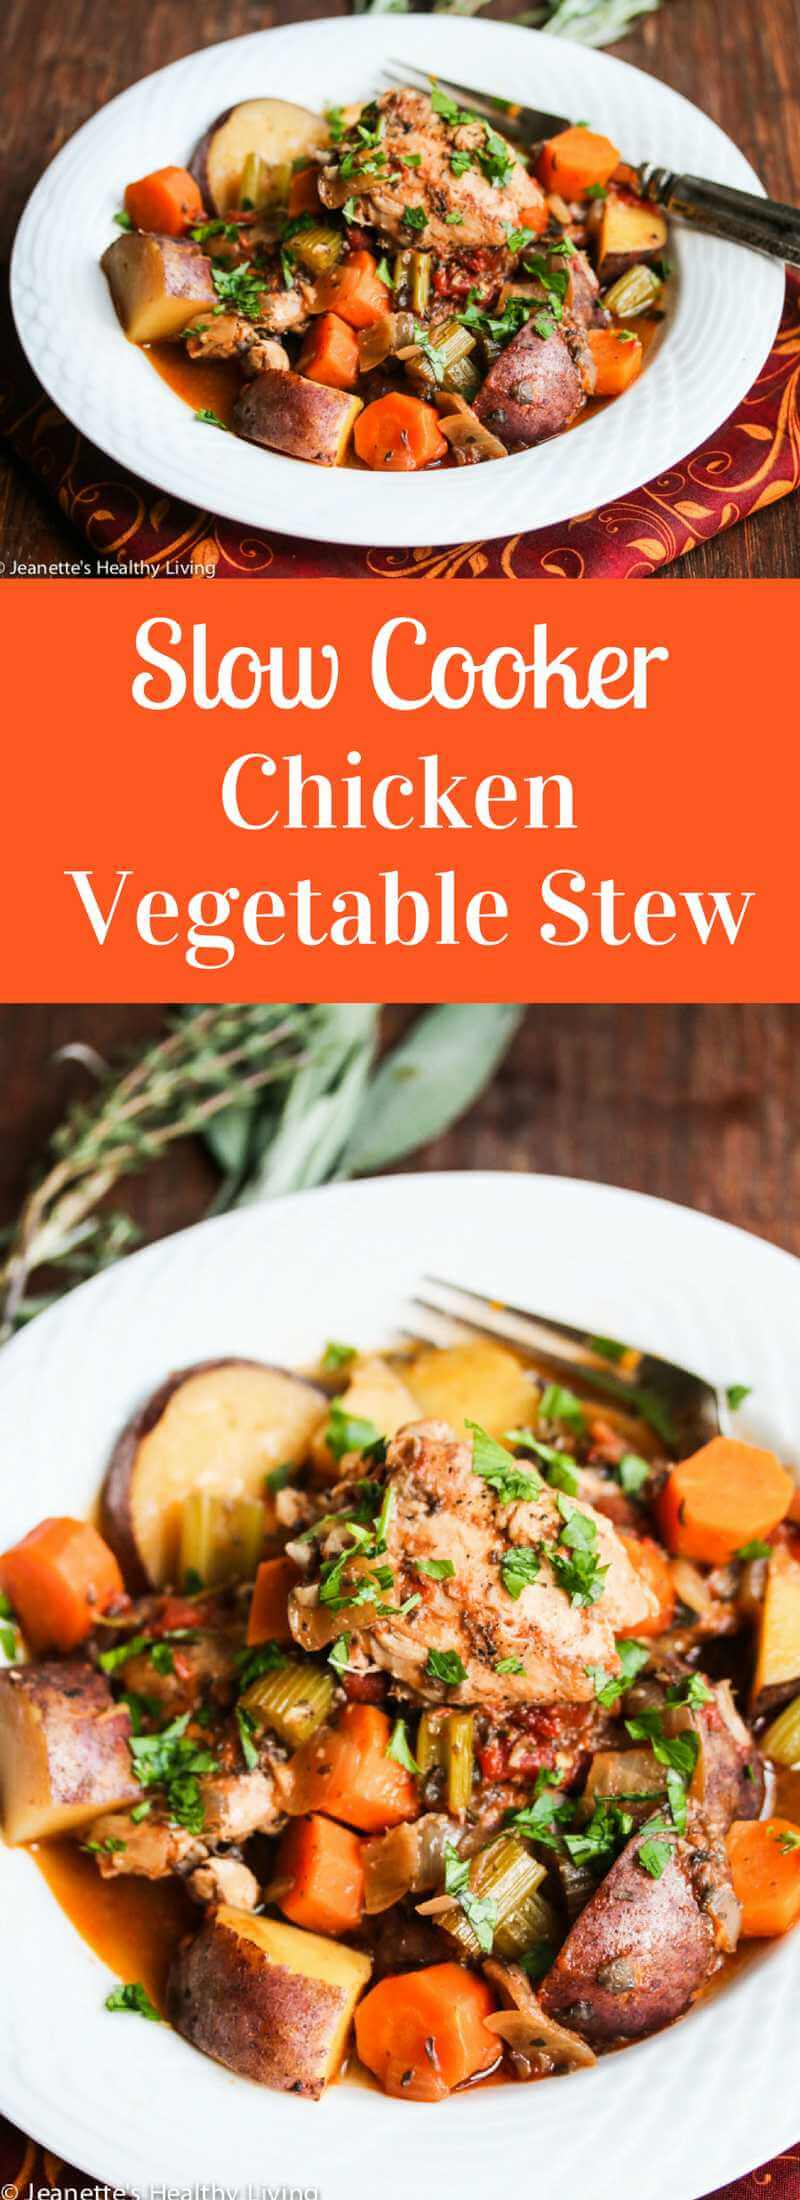 GSlow Cooker Chicken Vegetable Stew Recipe - learn what vegetables, herbs and spices go well in chicken stew, and how to make a healthy chicken stew ~ http://jeanetteshealthyliving.com